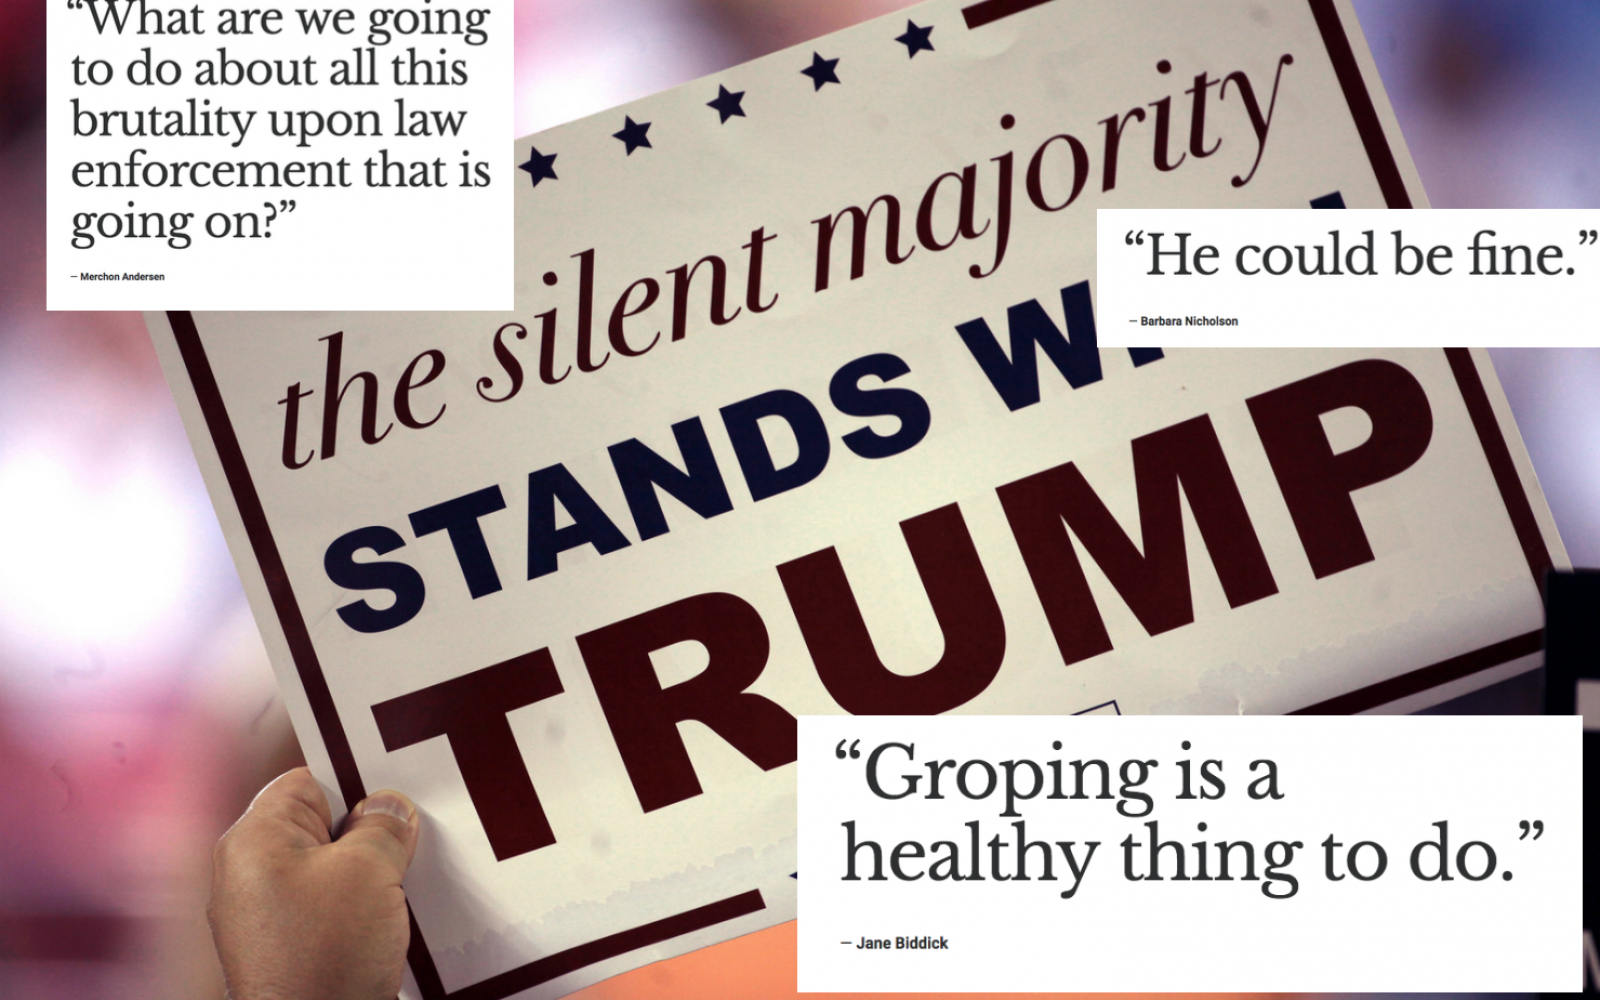 15 Bleak AF Quotes That Sum Up The Depressing Lunacy Of Trump Voters